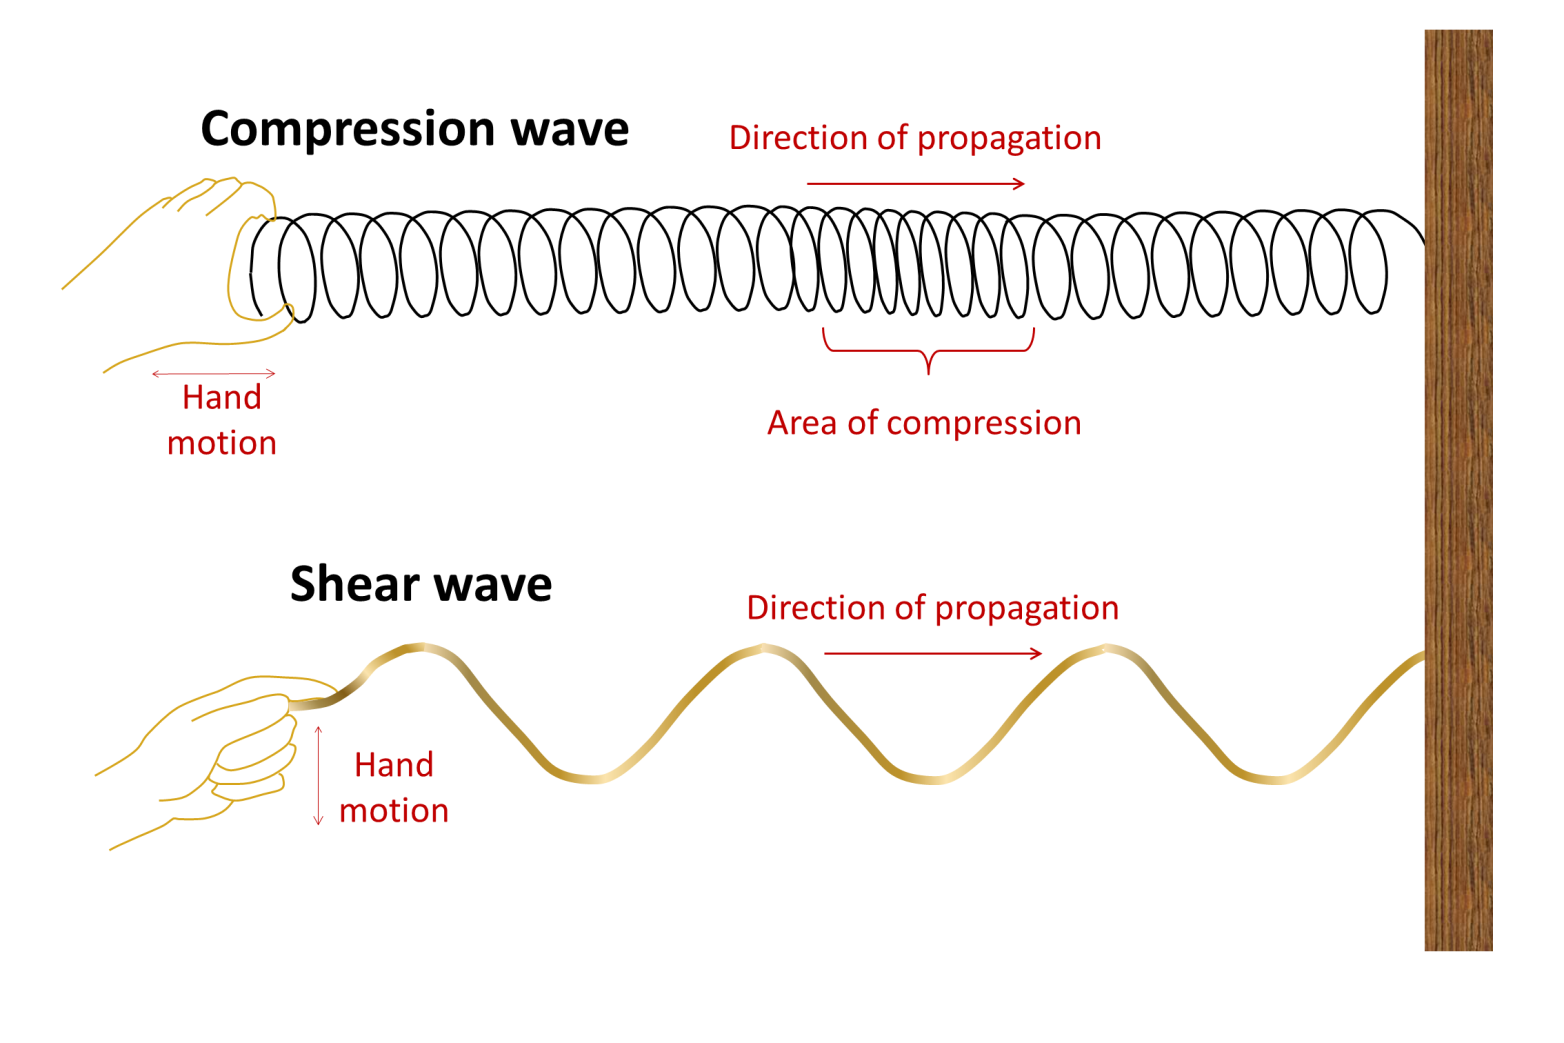 A compression wave can be illustrated by a spring (like a Slinky) that is given a sharp push at one end. A shear wave can be illustrated by a rope that is given a quick flick